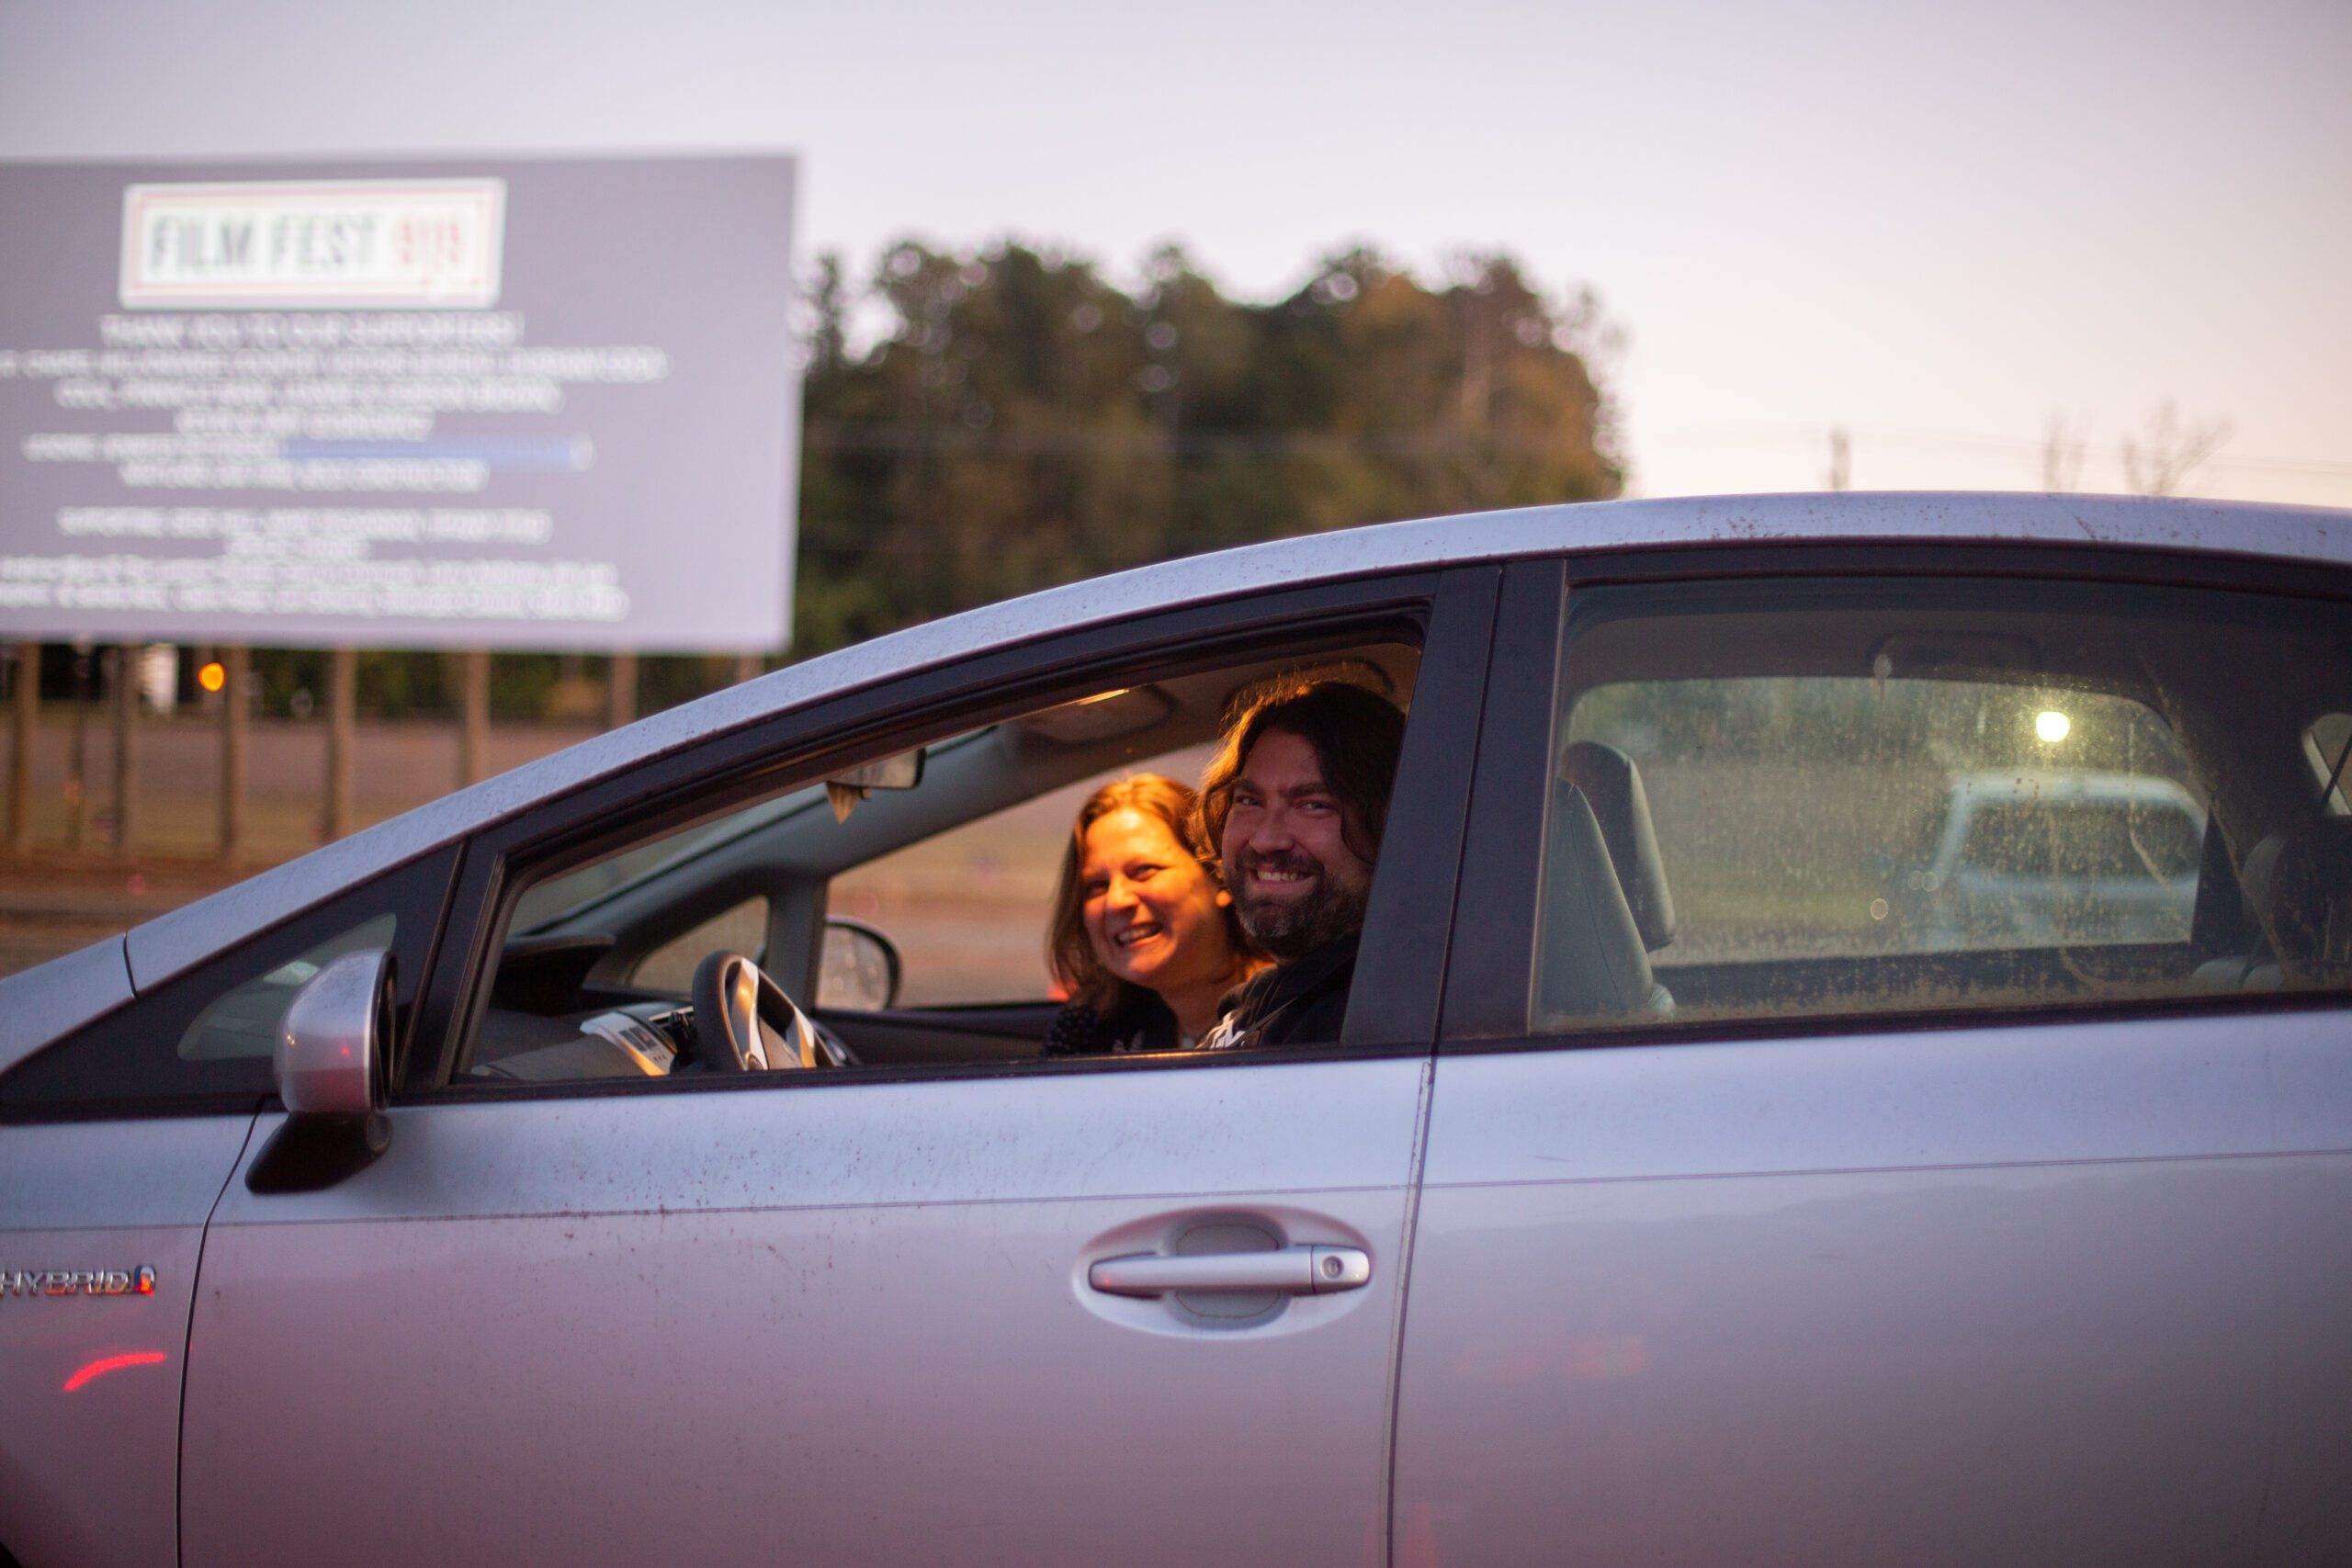 Chapel Hill's annual film festival, Film Fest 919, takes place all weekend long at various outdoor drive-in theatres.